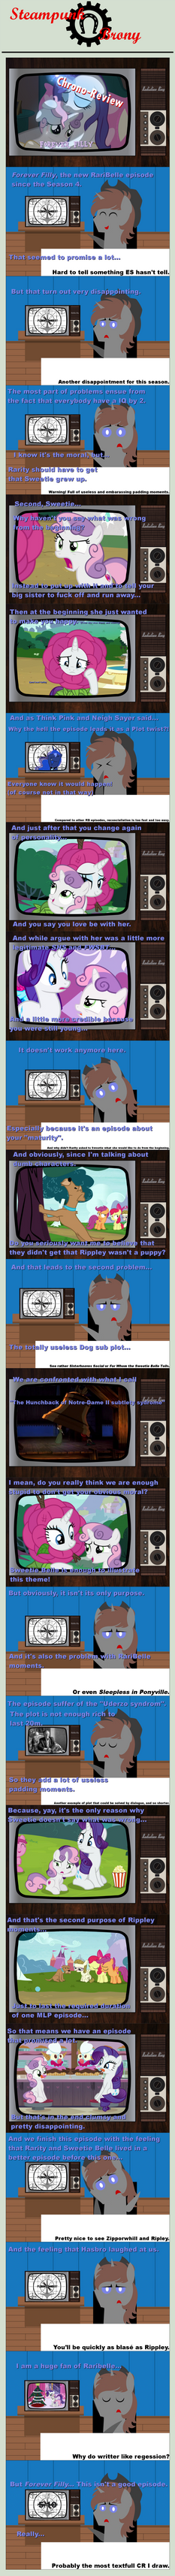 Chrono-Review#4 Forever Filly by Steampunk-Brony